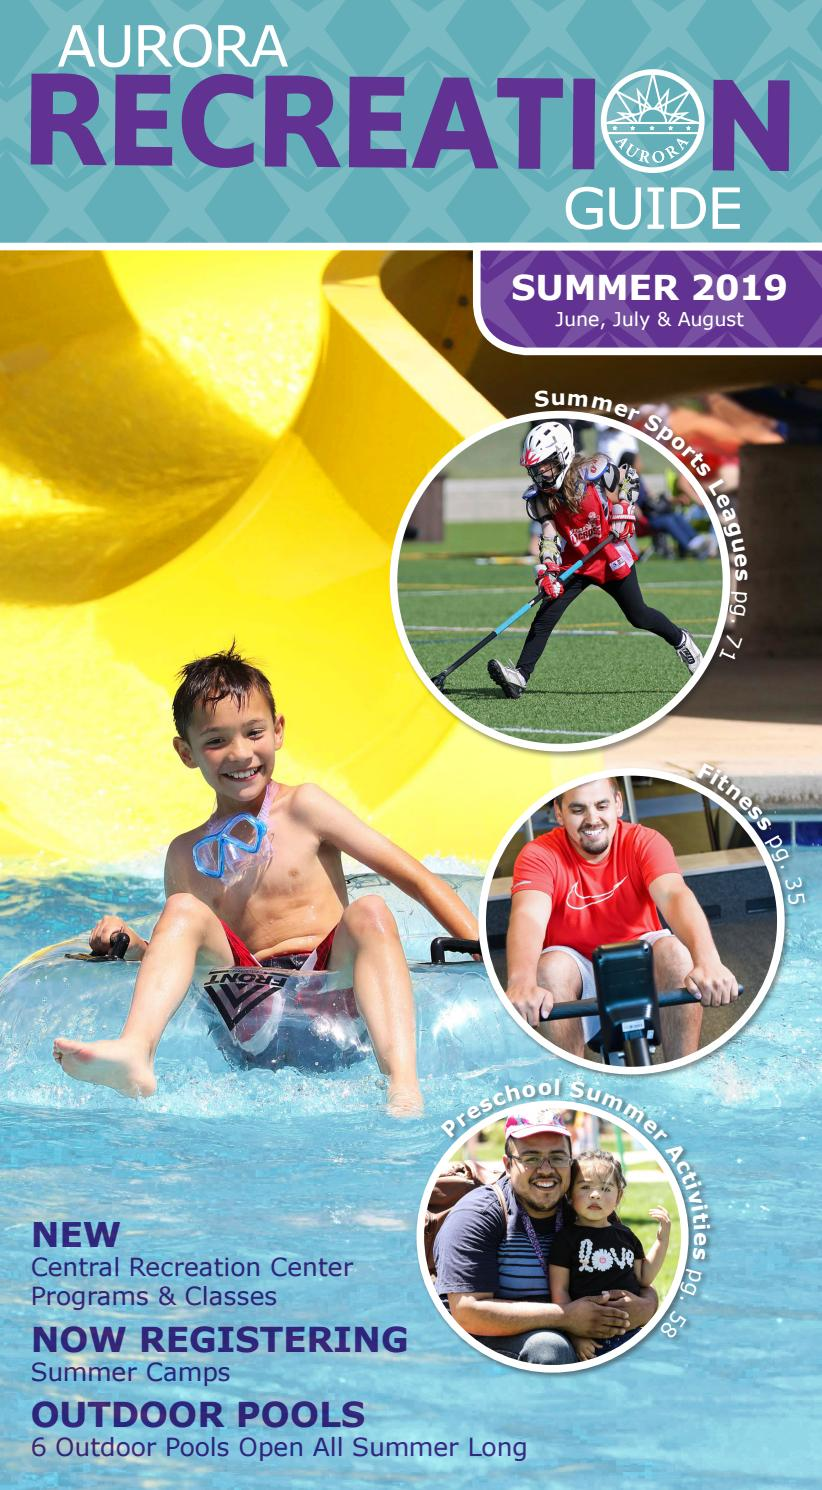 Summer 2019 Recreation Guide by Aurora CO - issuu